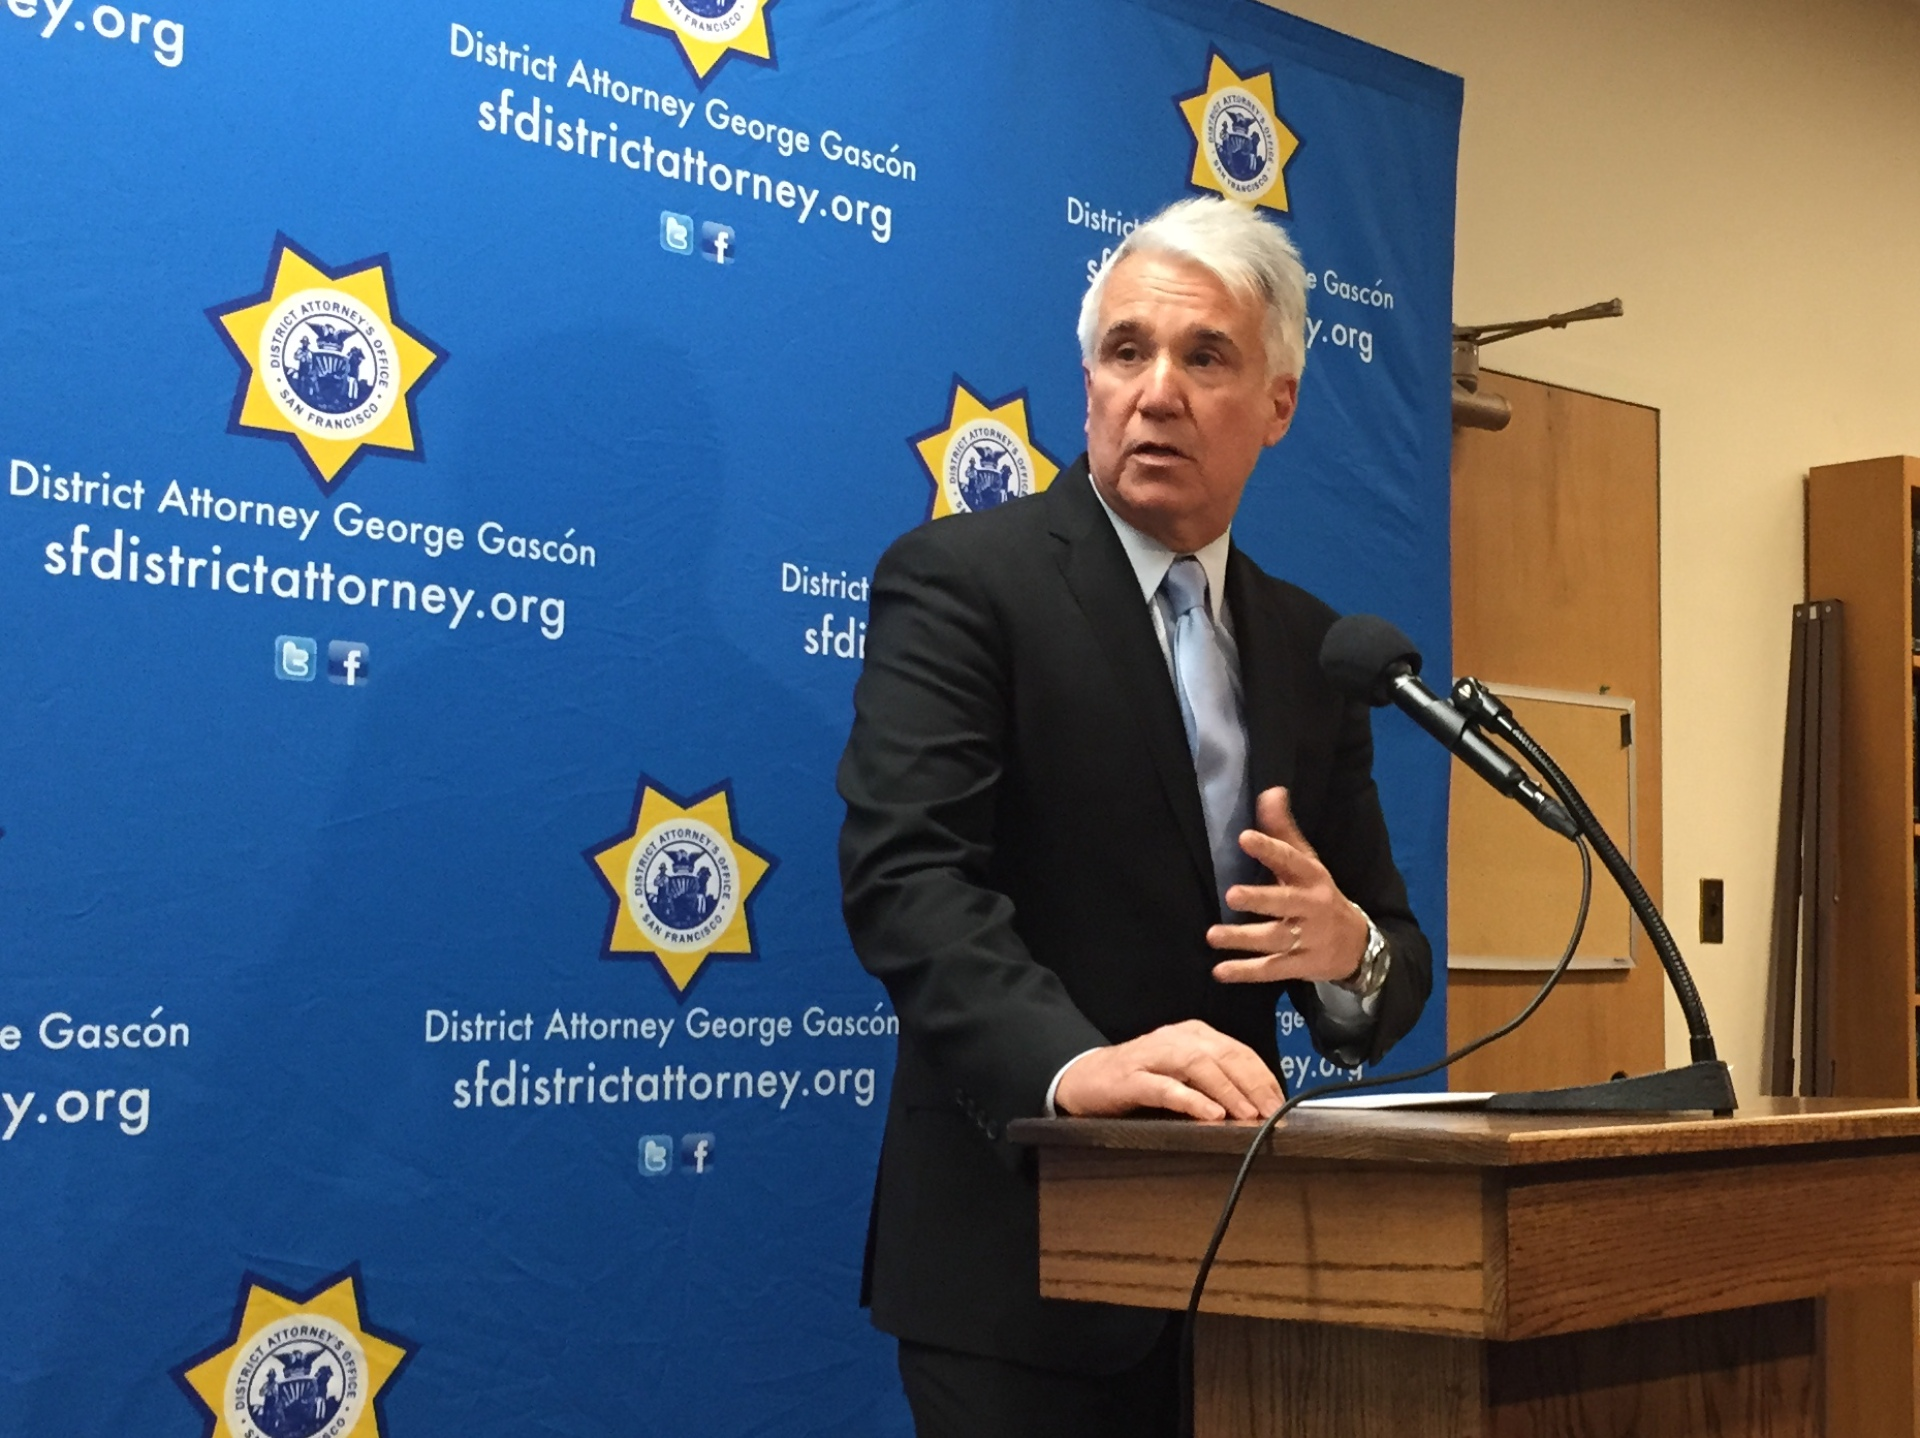 San Francisco District Attorney George Gascón says his office will conduct independent investigations into multiple scandals involving San Francisco law enforcement agencies.